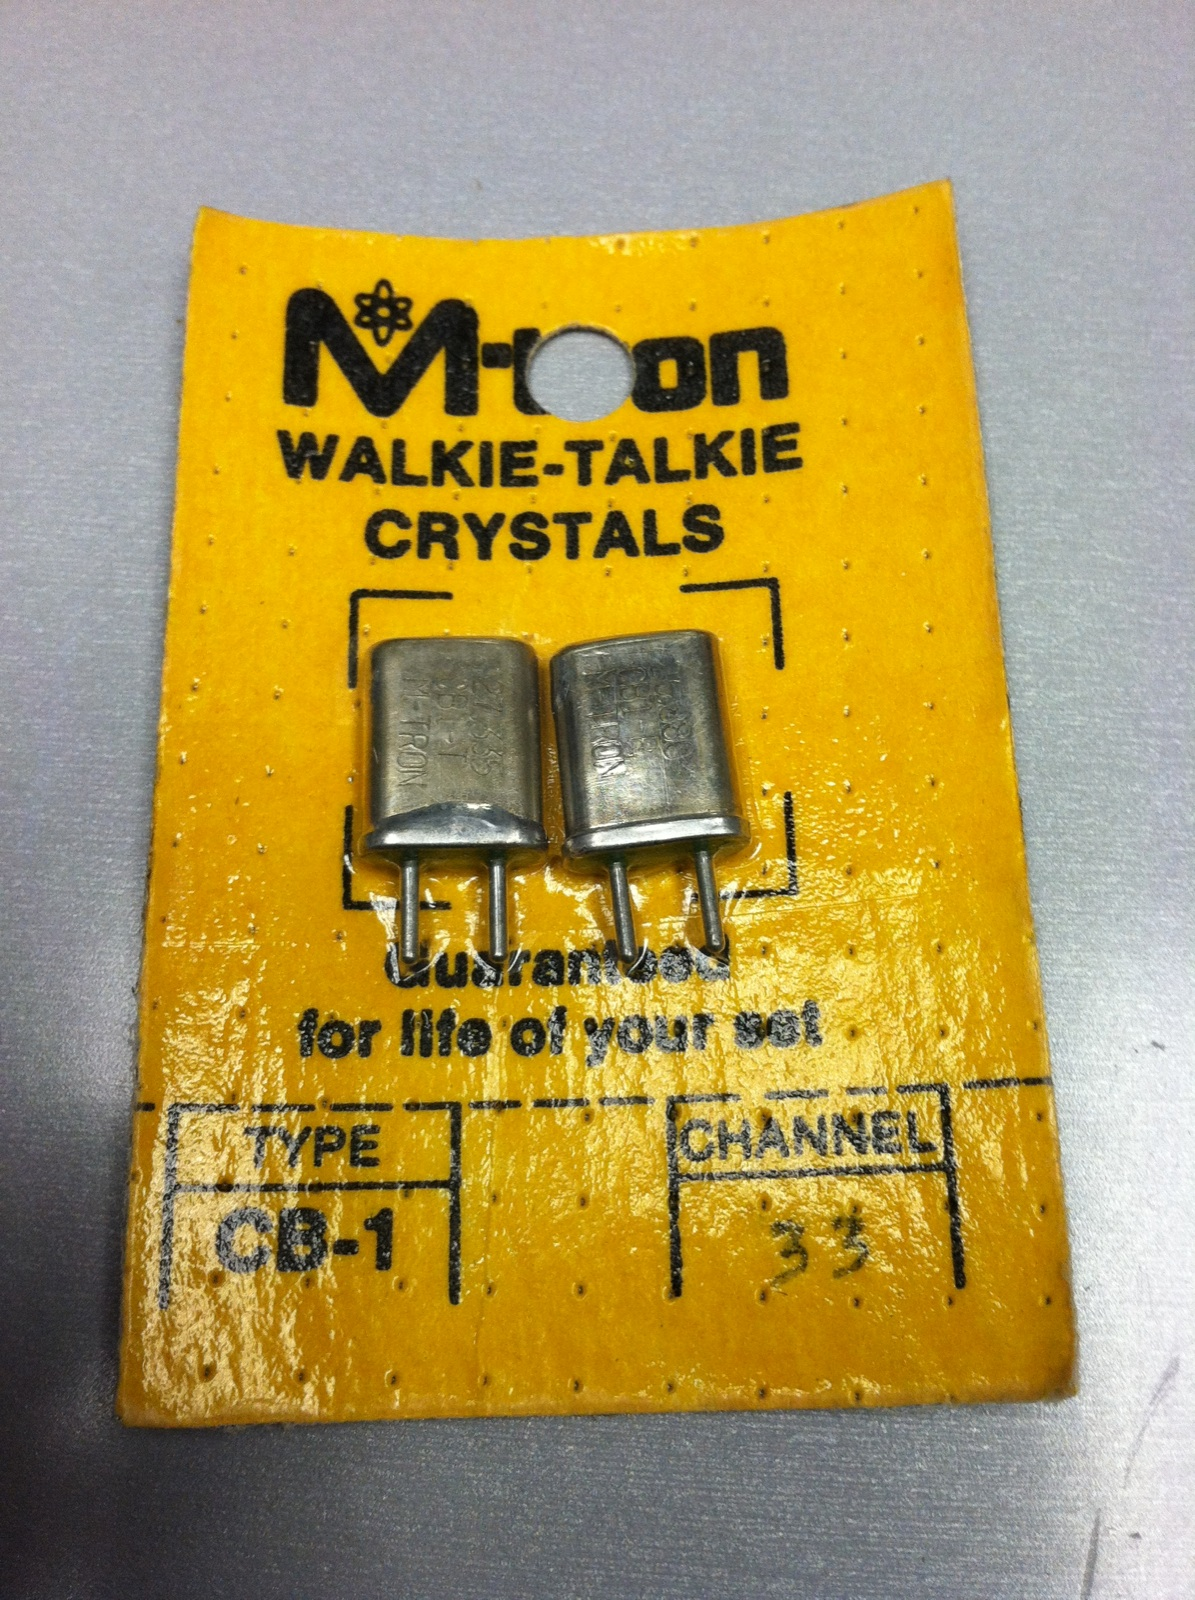 CB CH33 channel 33 replacement receive & transmit crystals for a handheld walkie talkies